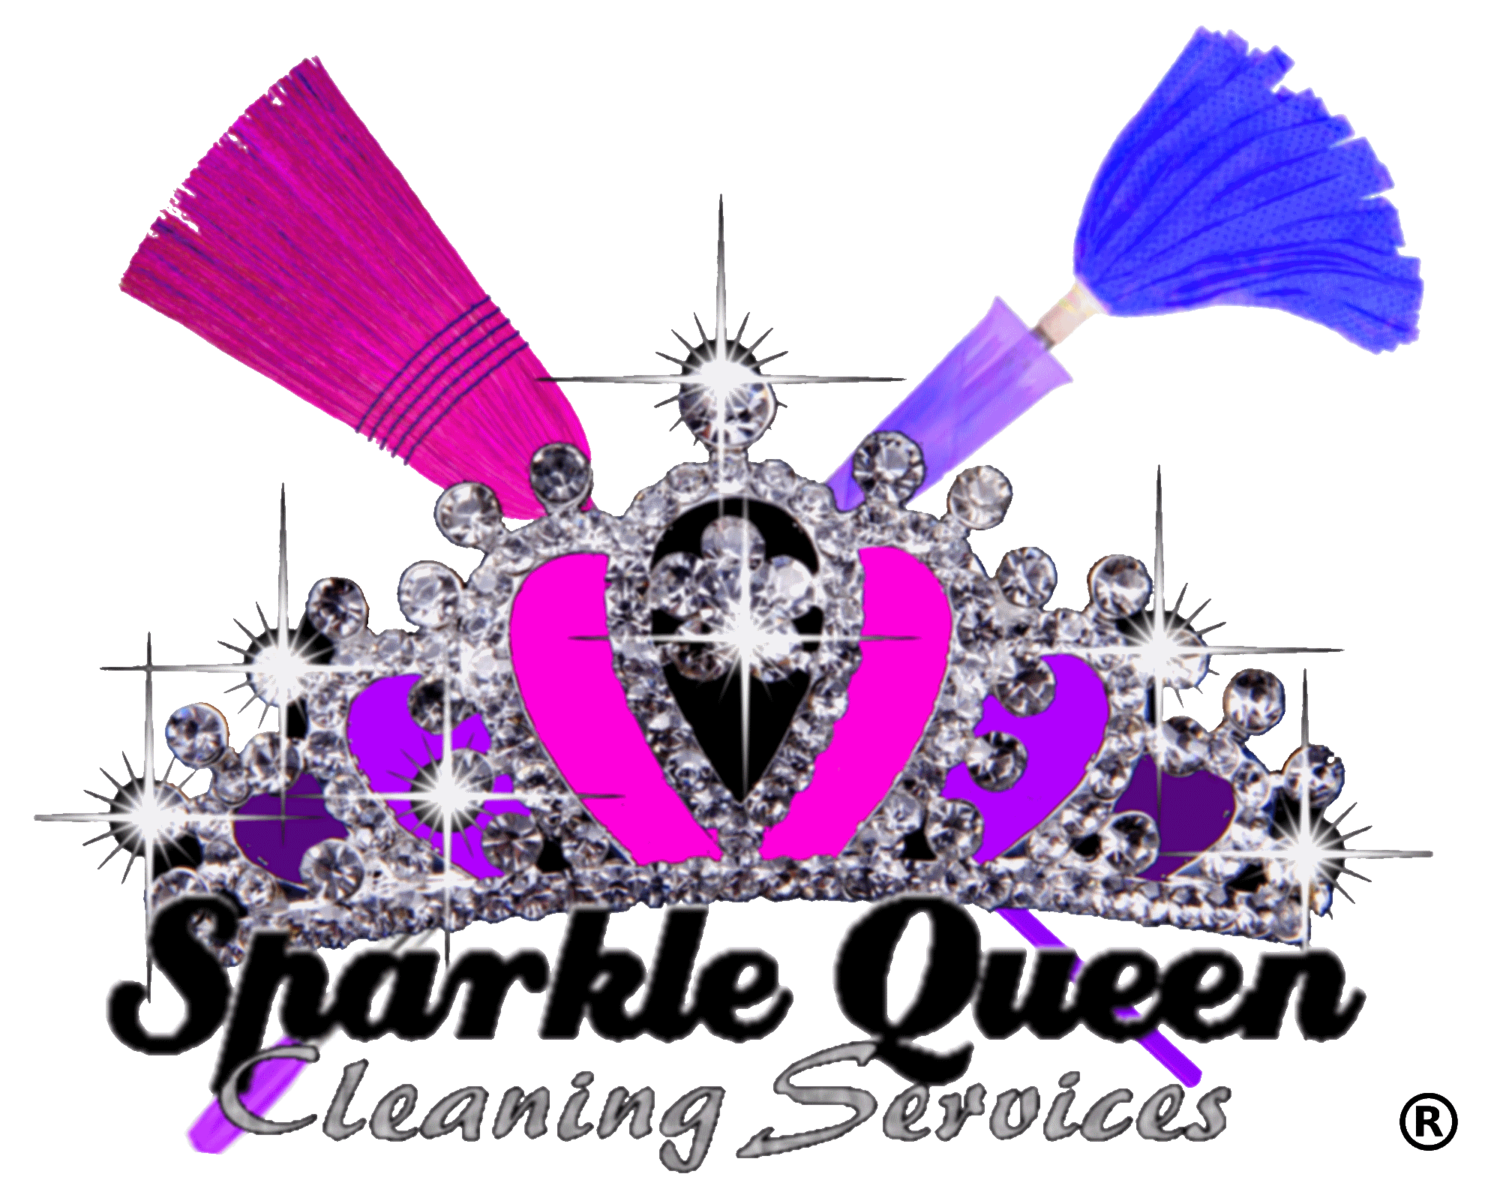 Sparkle Queen Cleaning